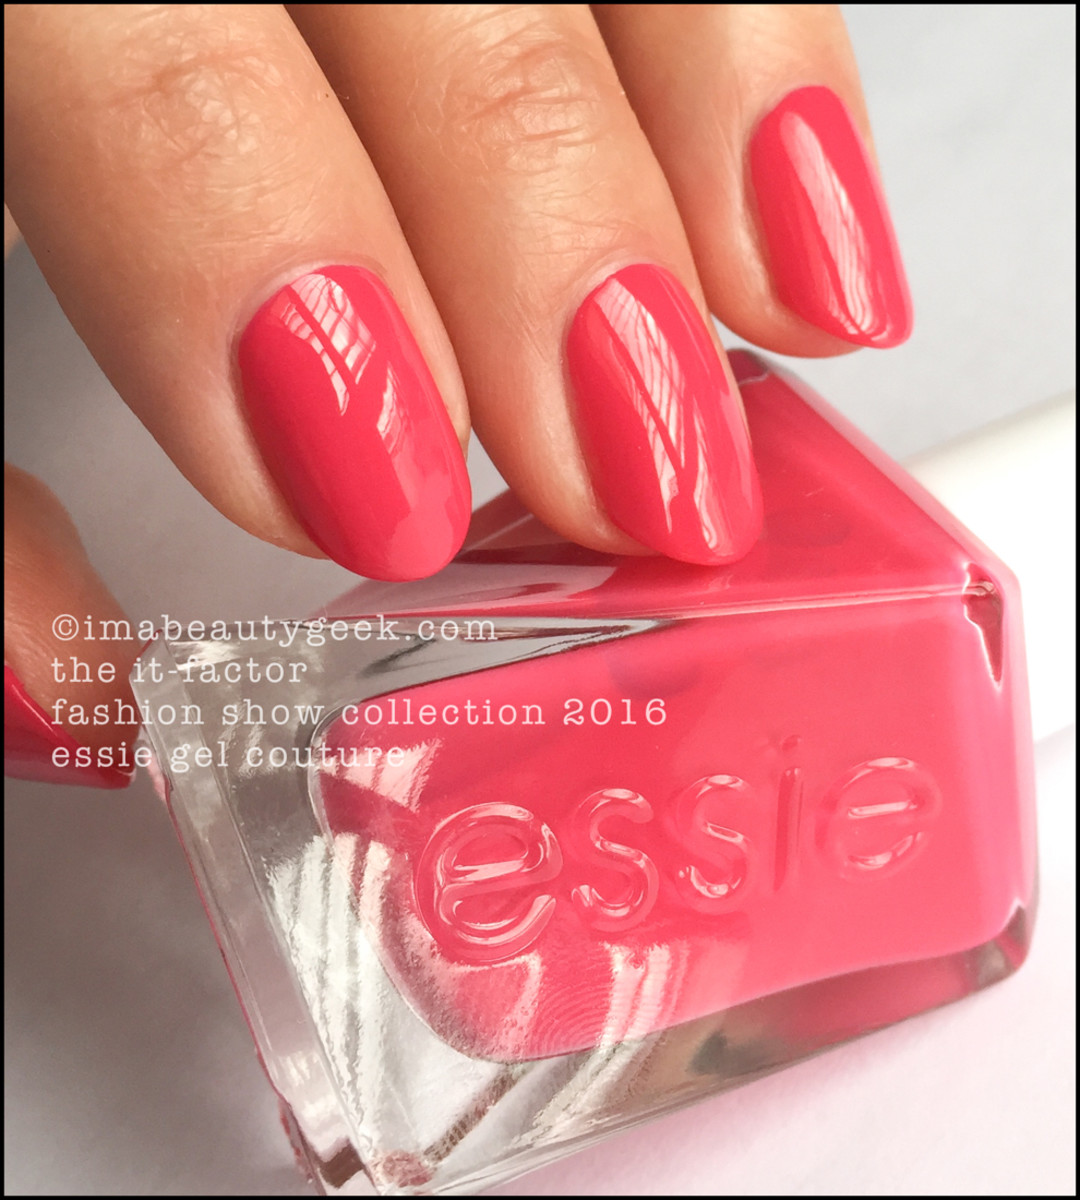 Essie The It Factor_Essie Gel Couture Review Swatches 2016